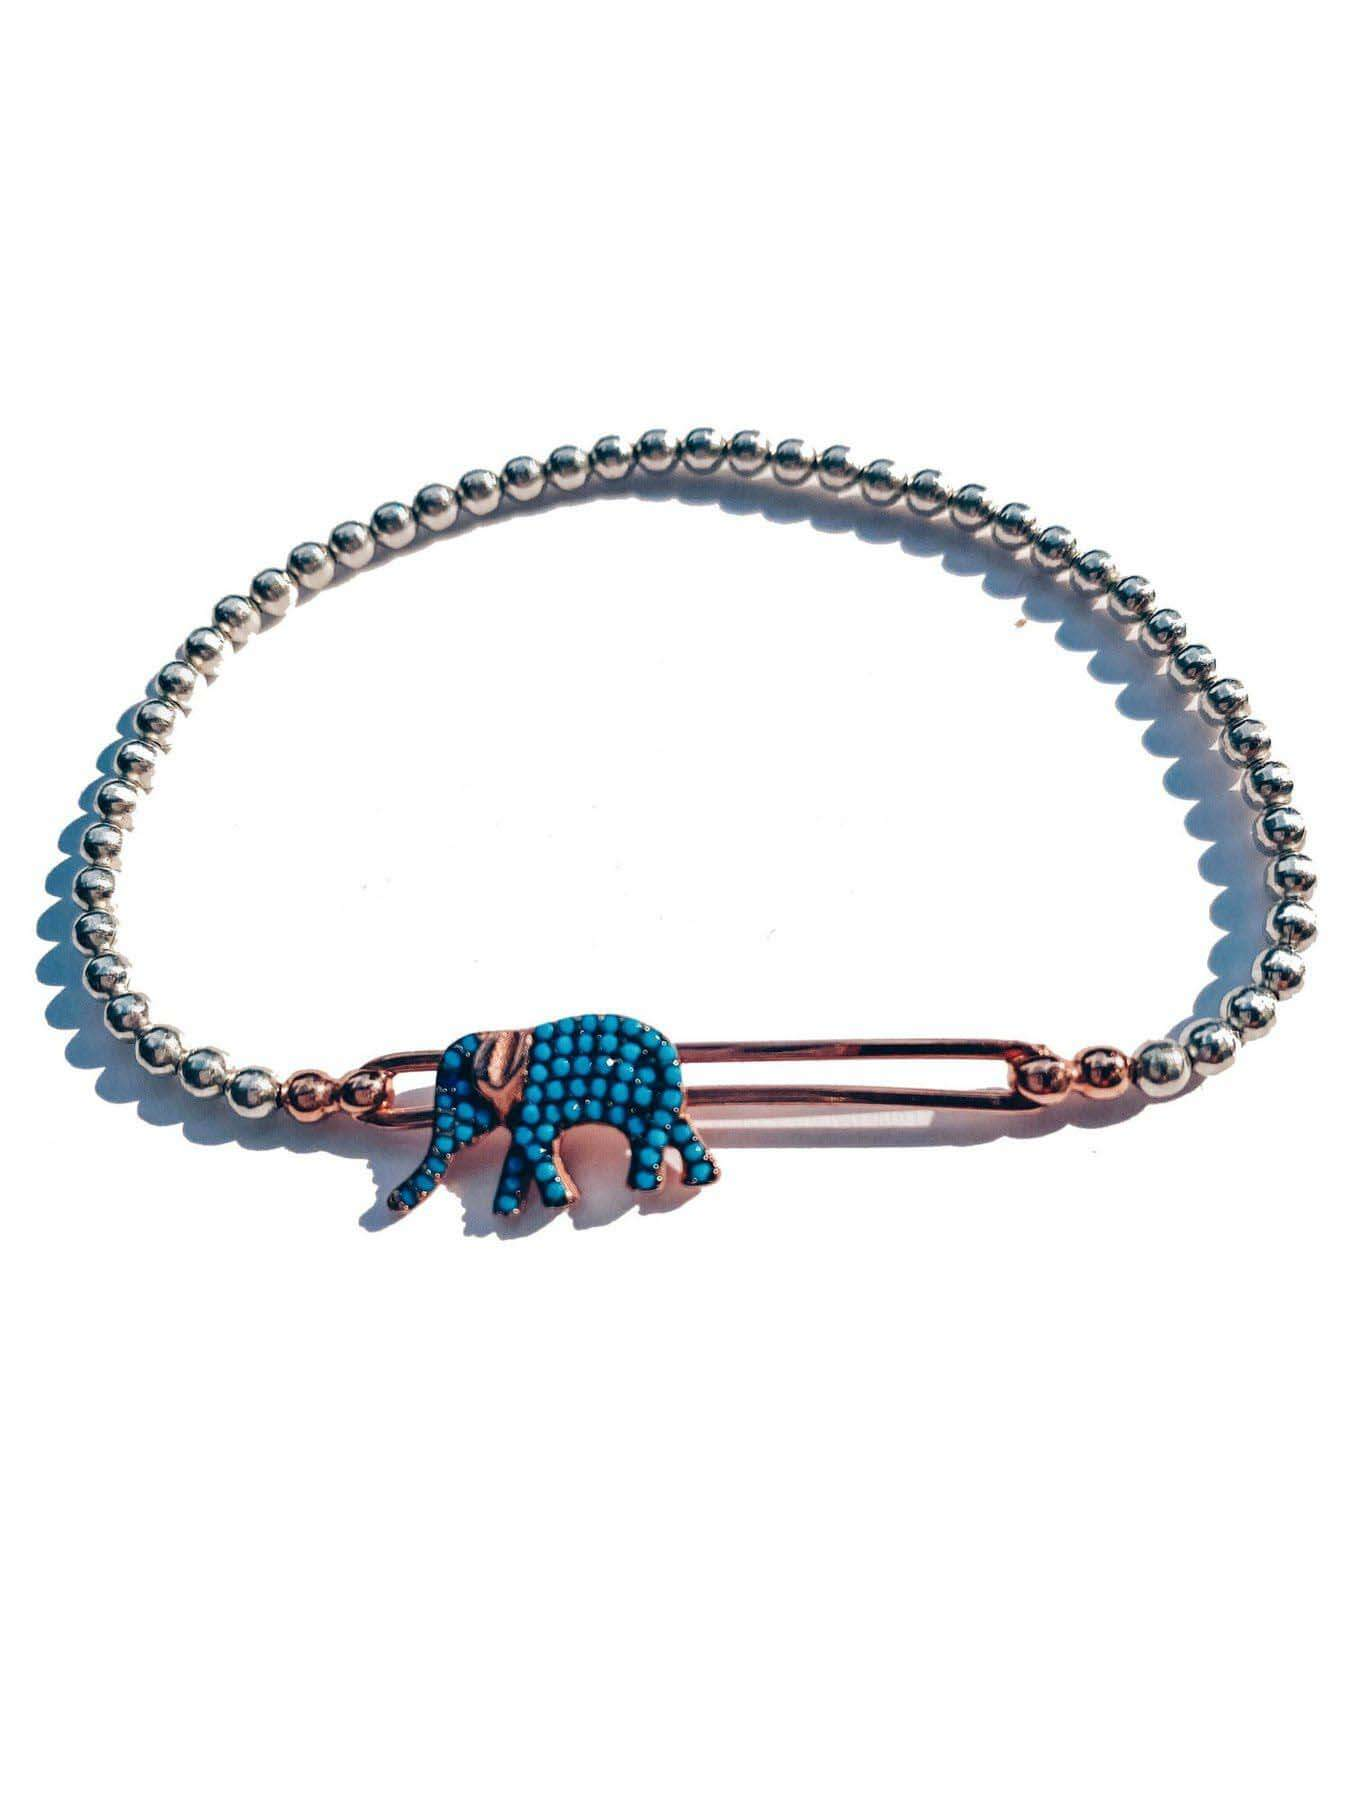 Elephant bracelet available on aparnastyle.com